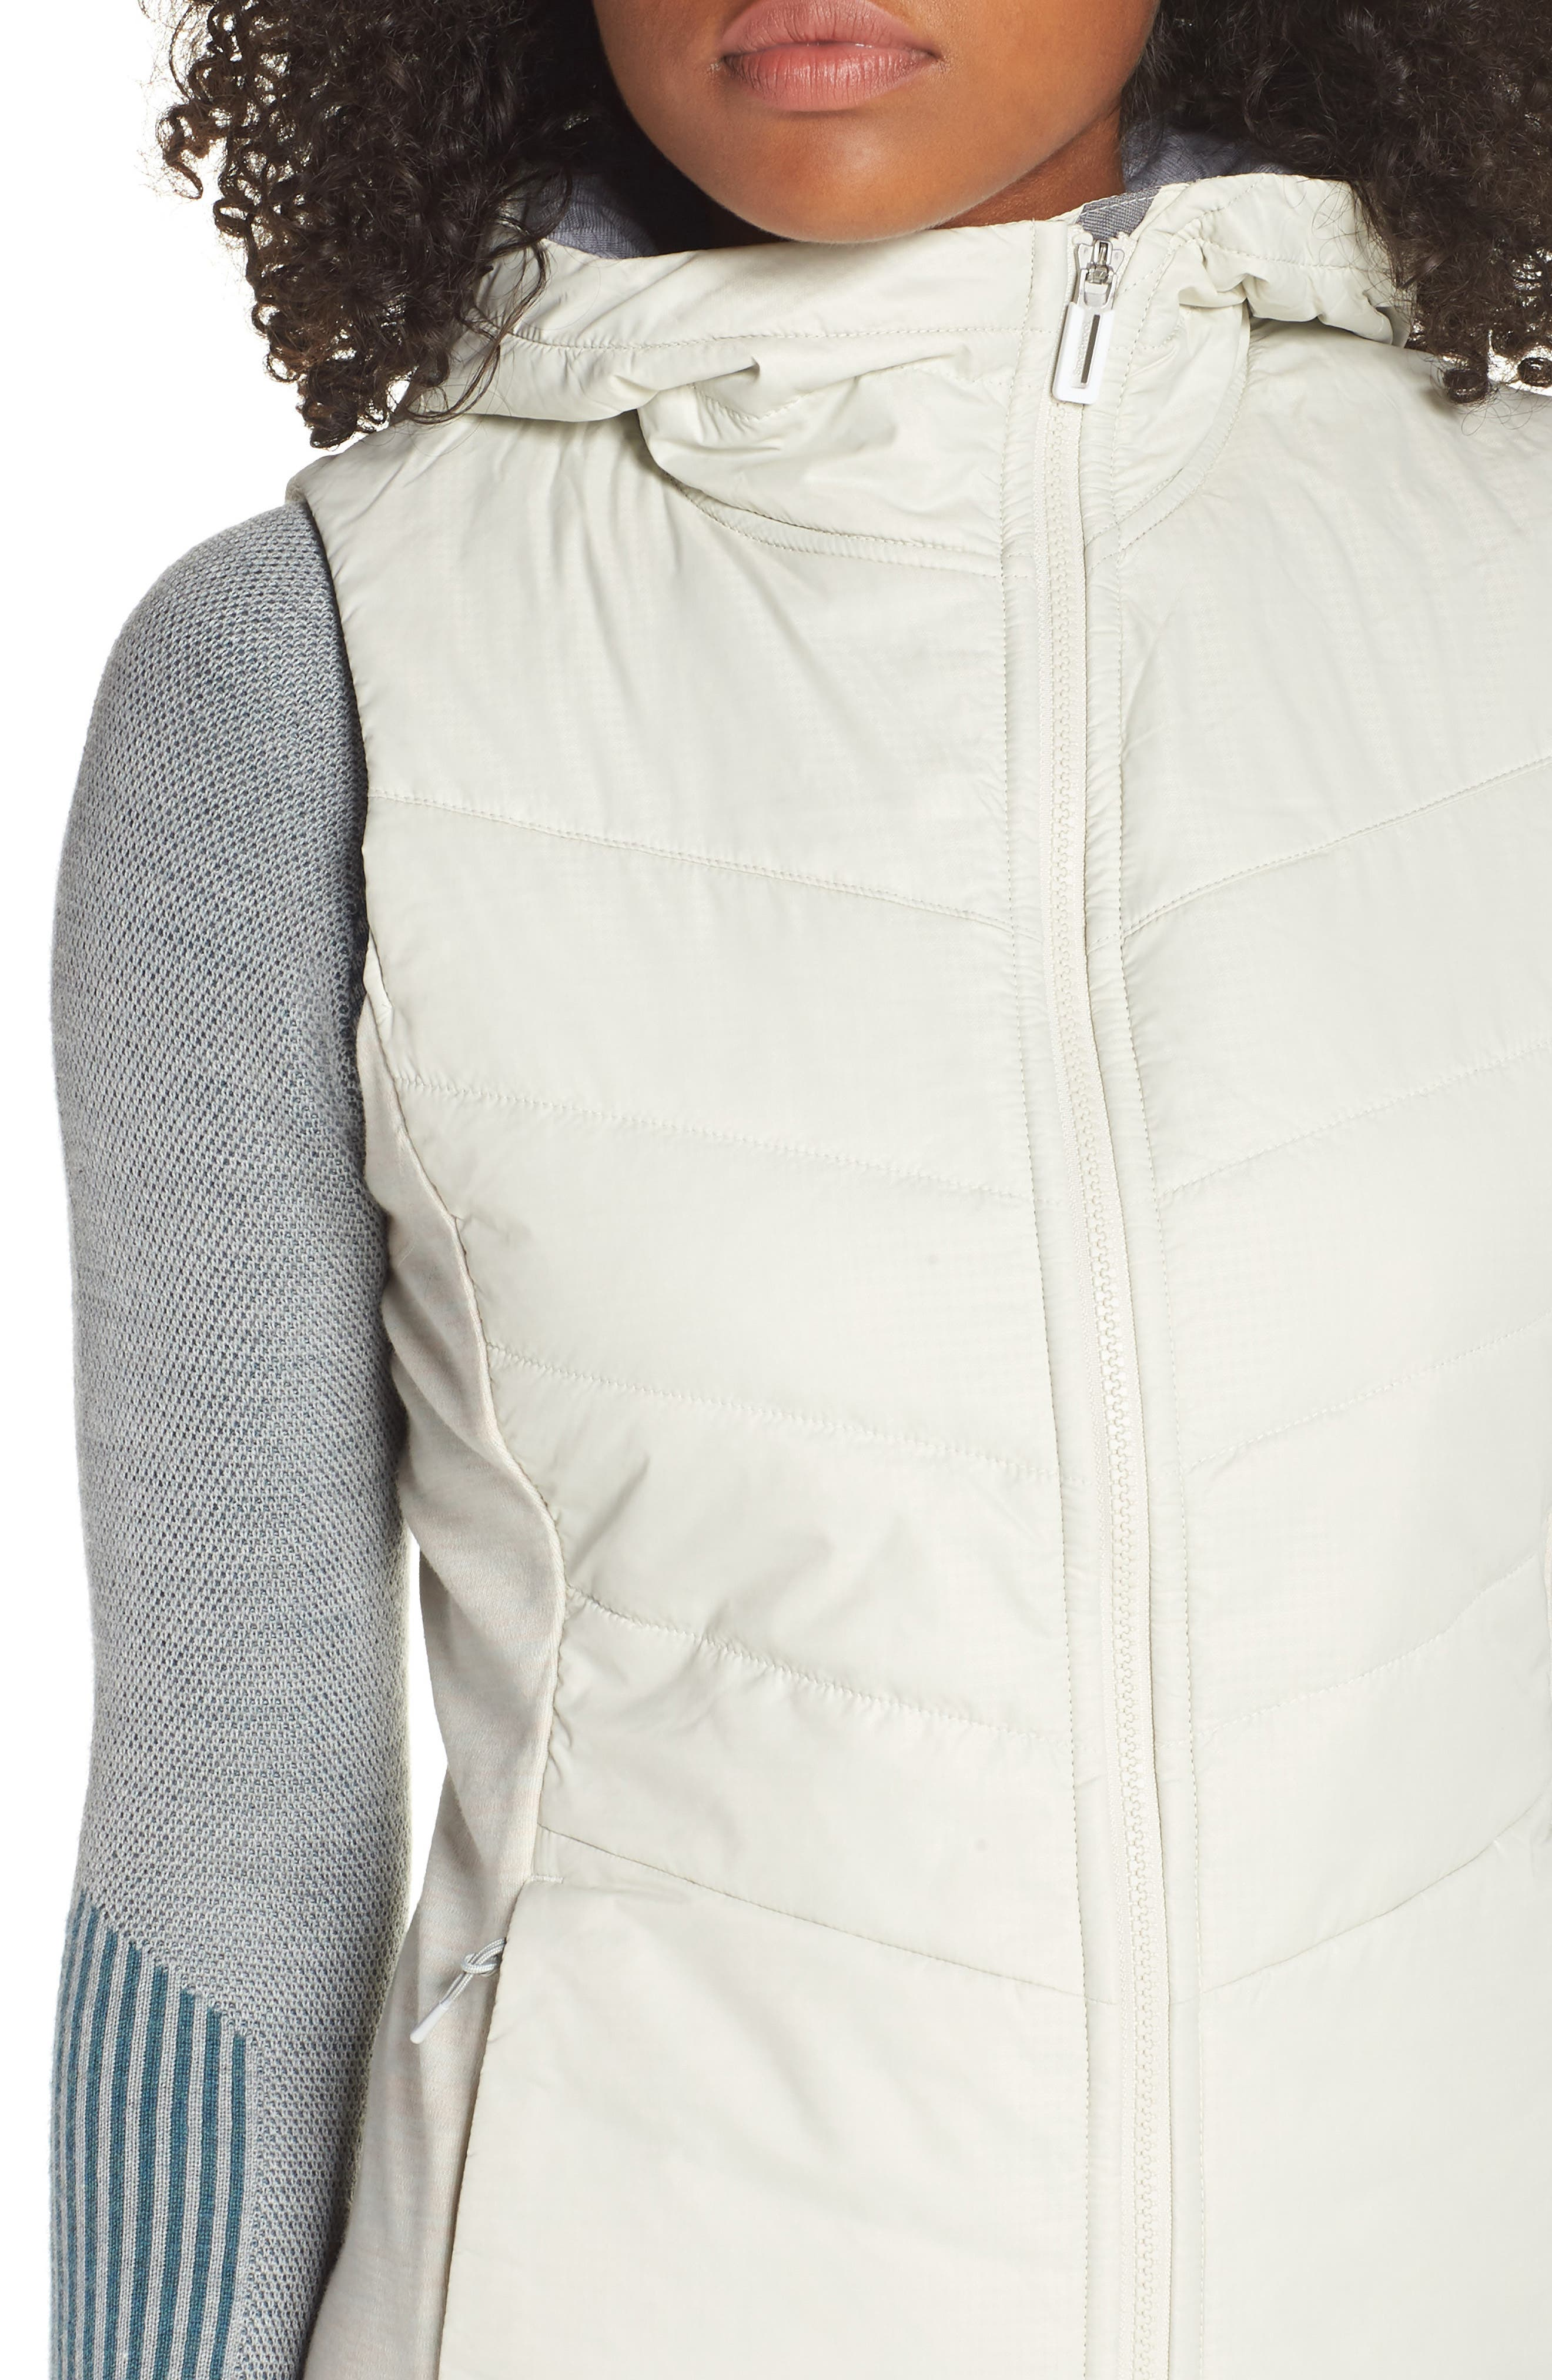 Smartloft 60 Insulated Hooded Vest,                             Alternate thumbnail 4, color,                             025